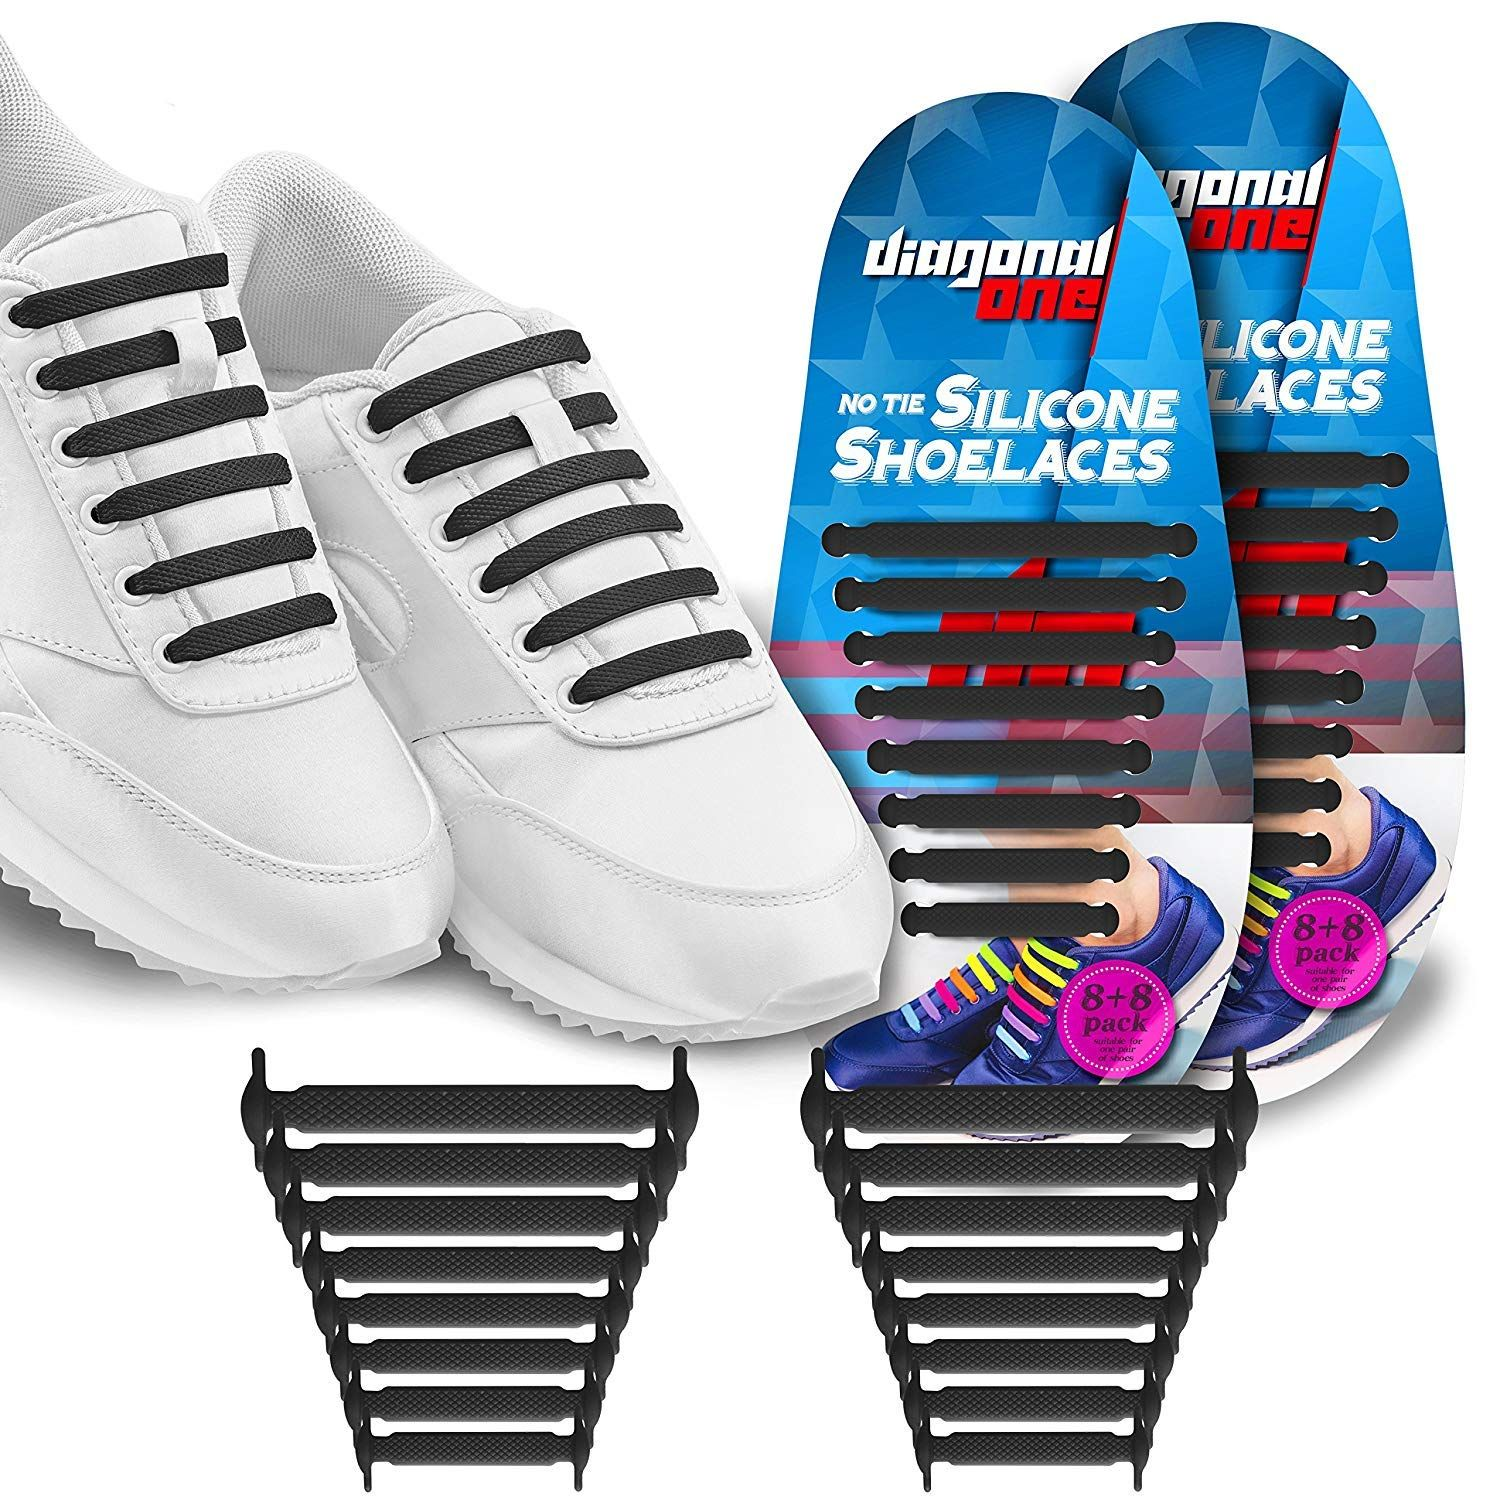 64978dbe9385a Diagonal One No Tie Shoelaces for Kids & Adults. The Elastic ...